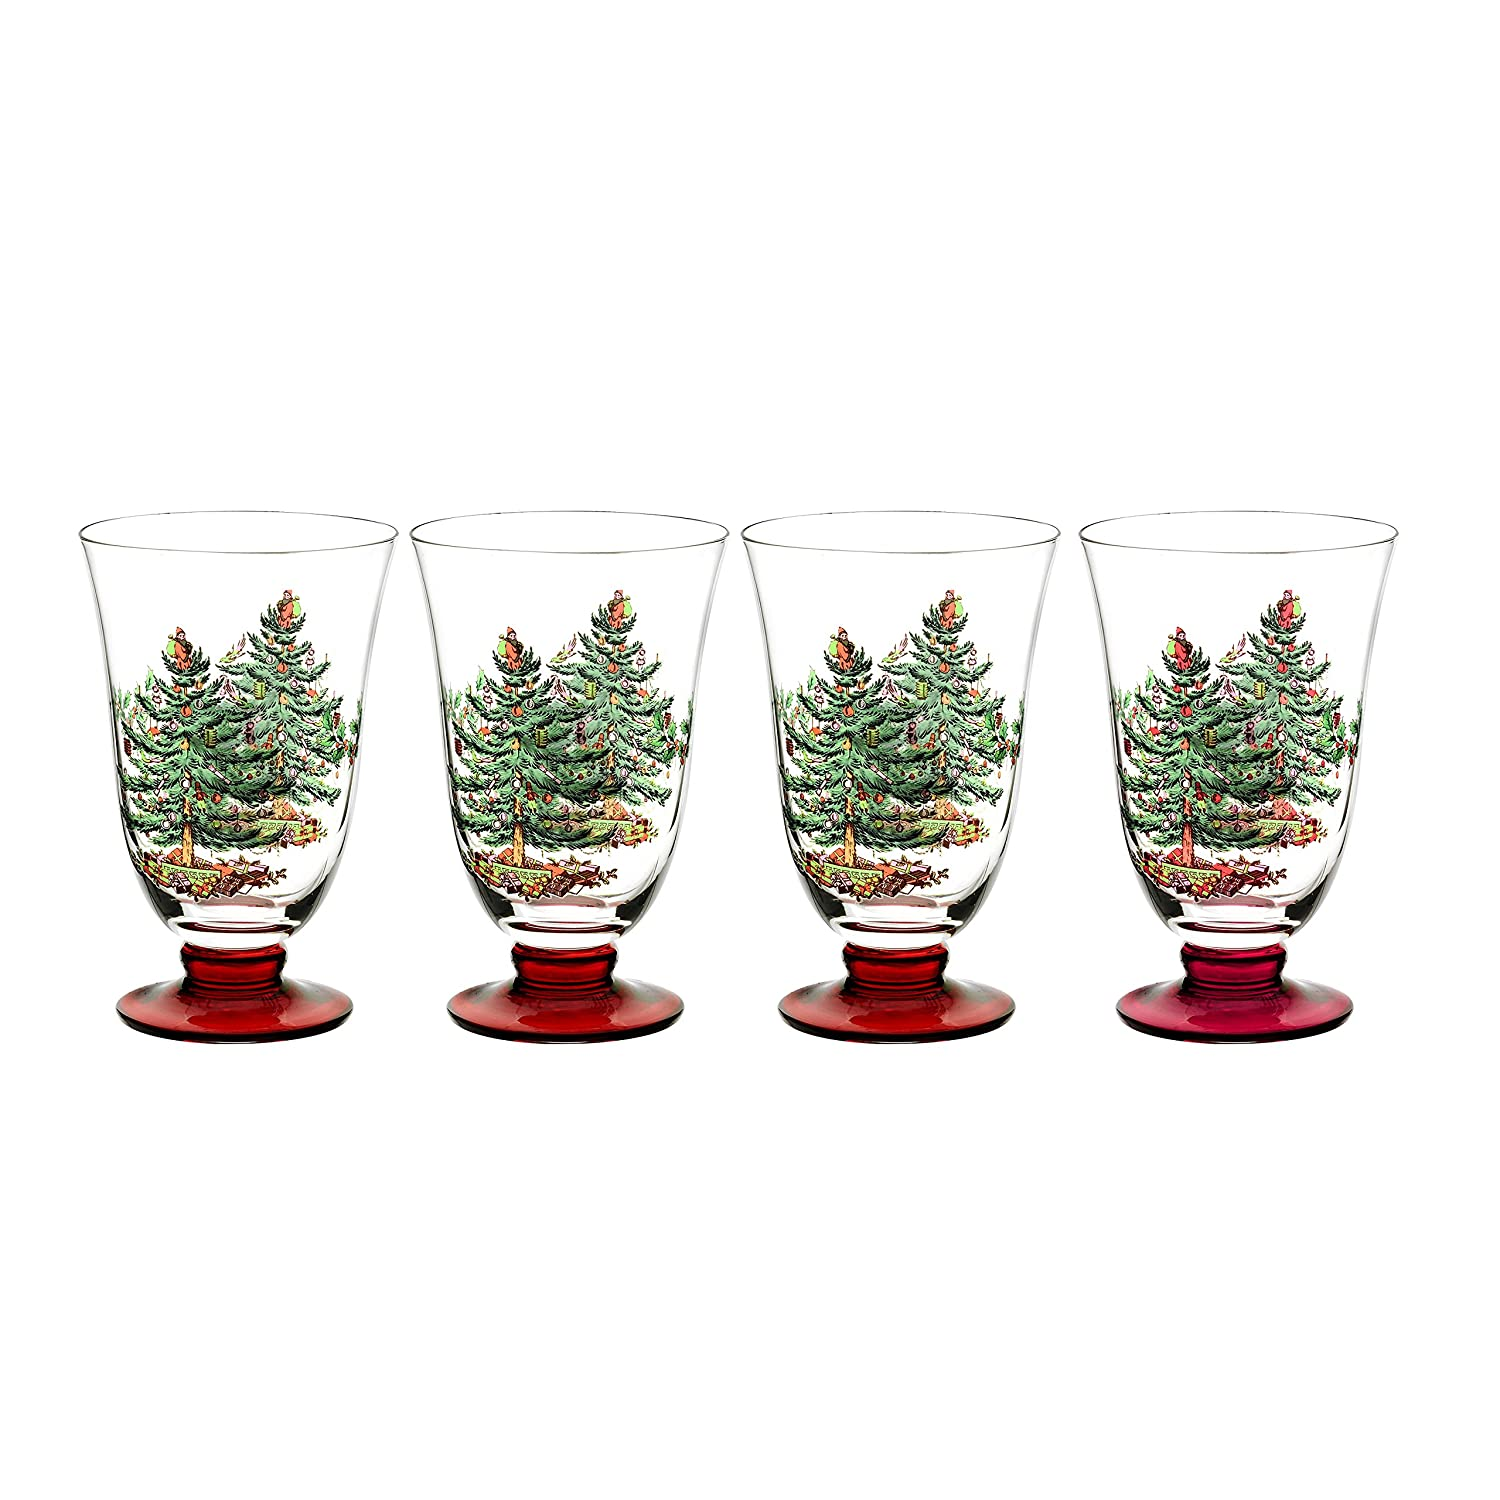 Spode Christmas Tree Glass Footed All Purpose Glasses with Red Stem, Set of 4 1607880